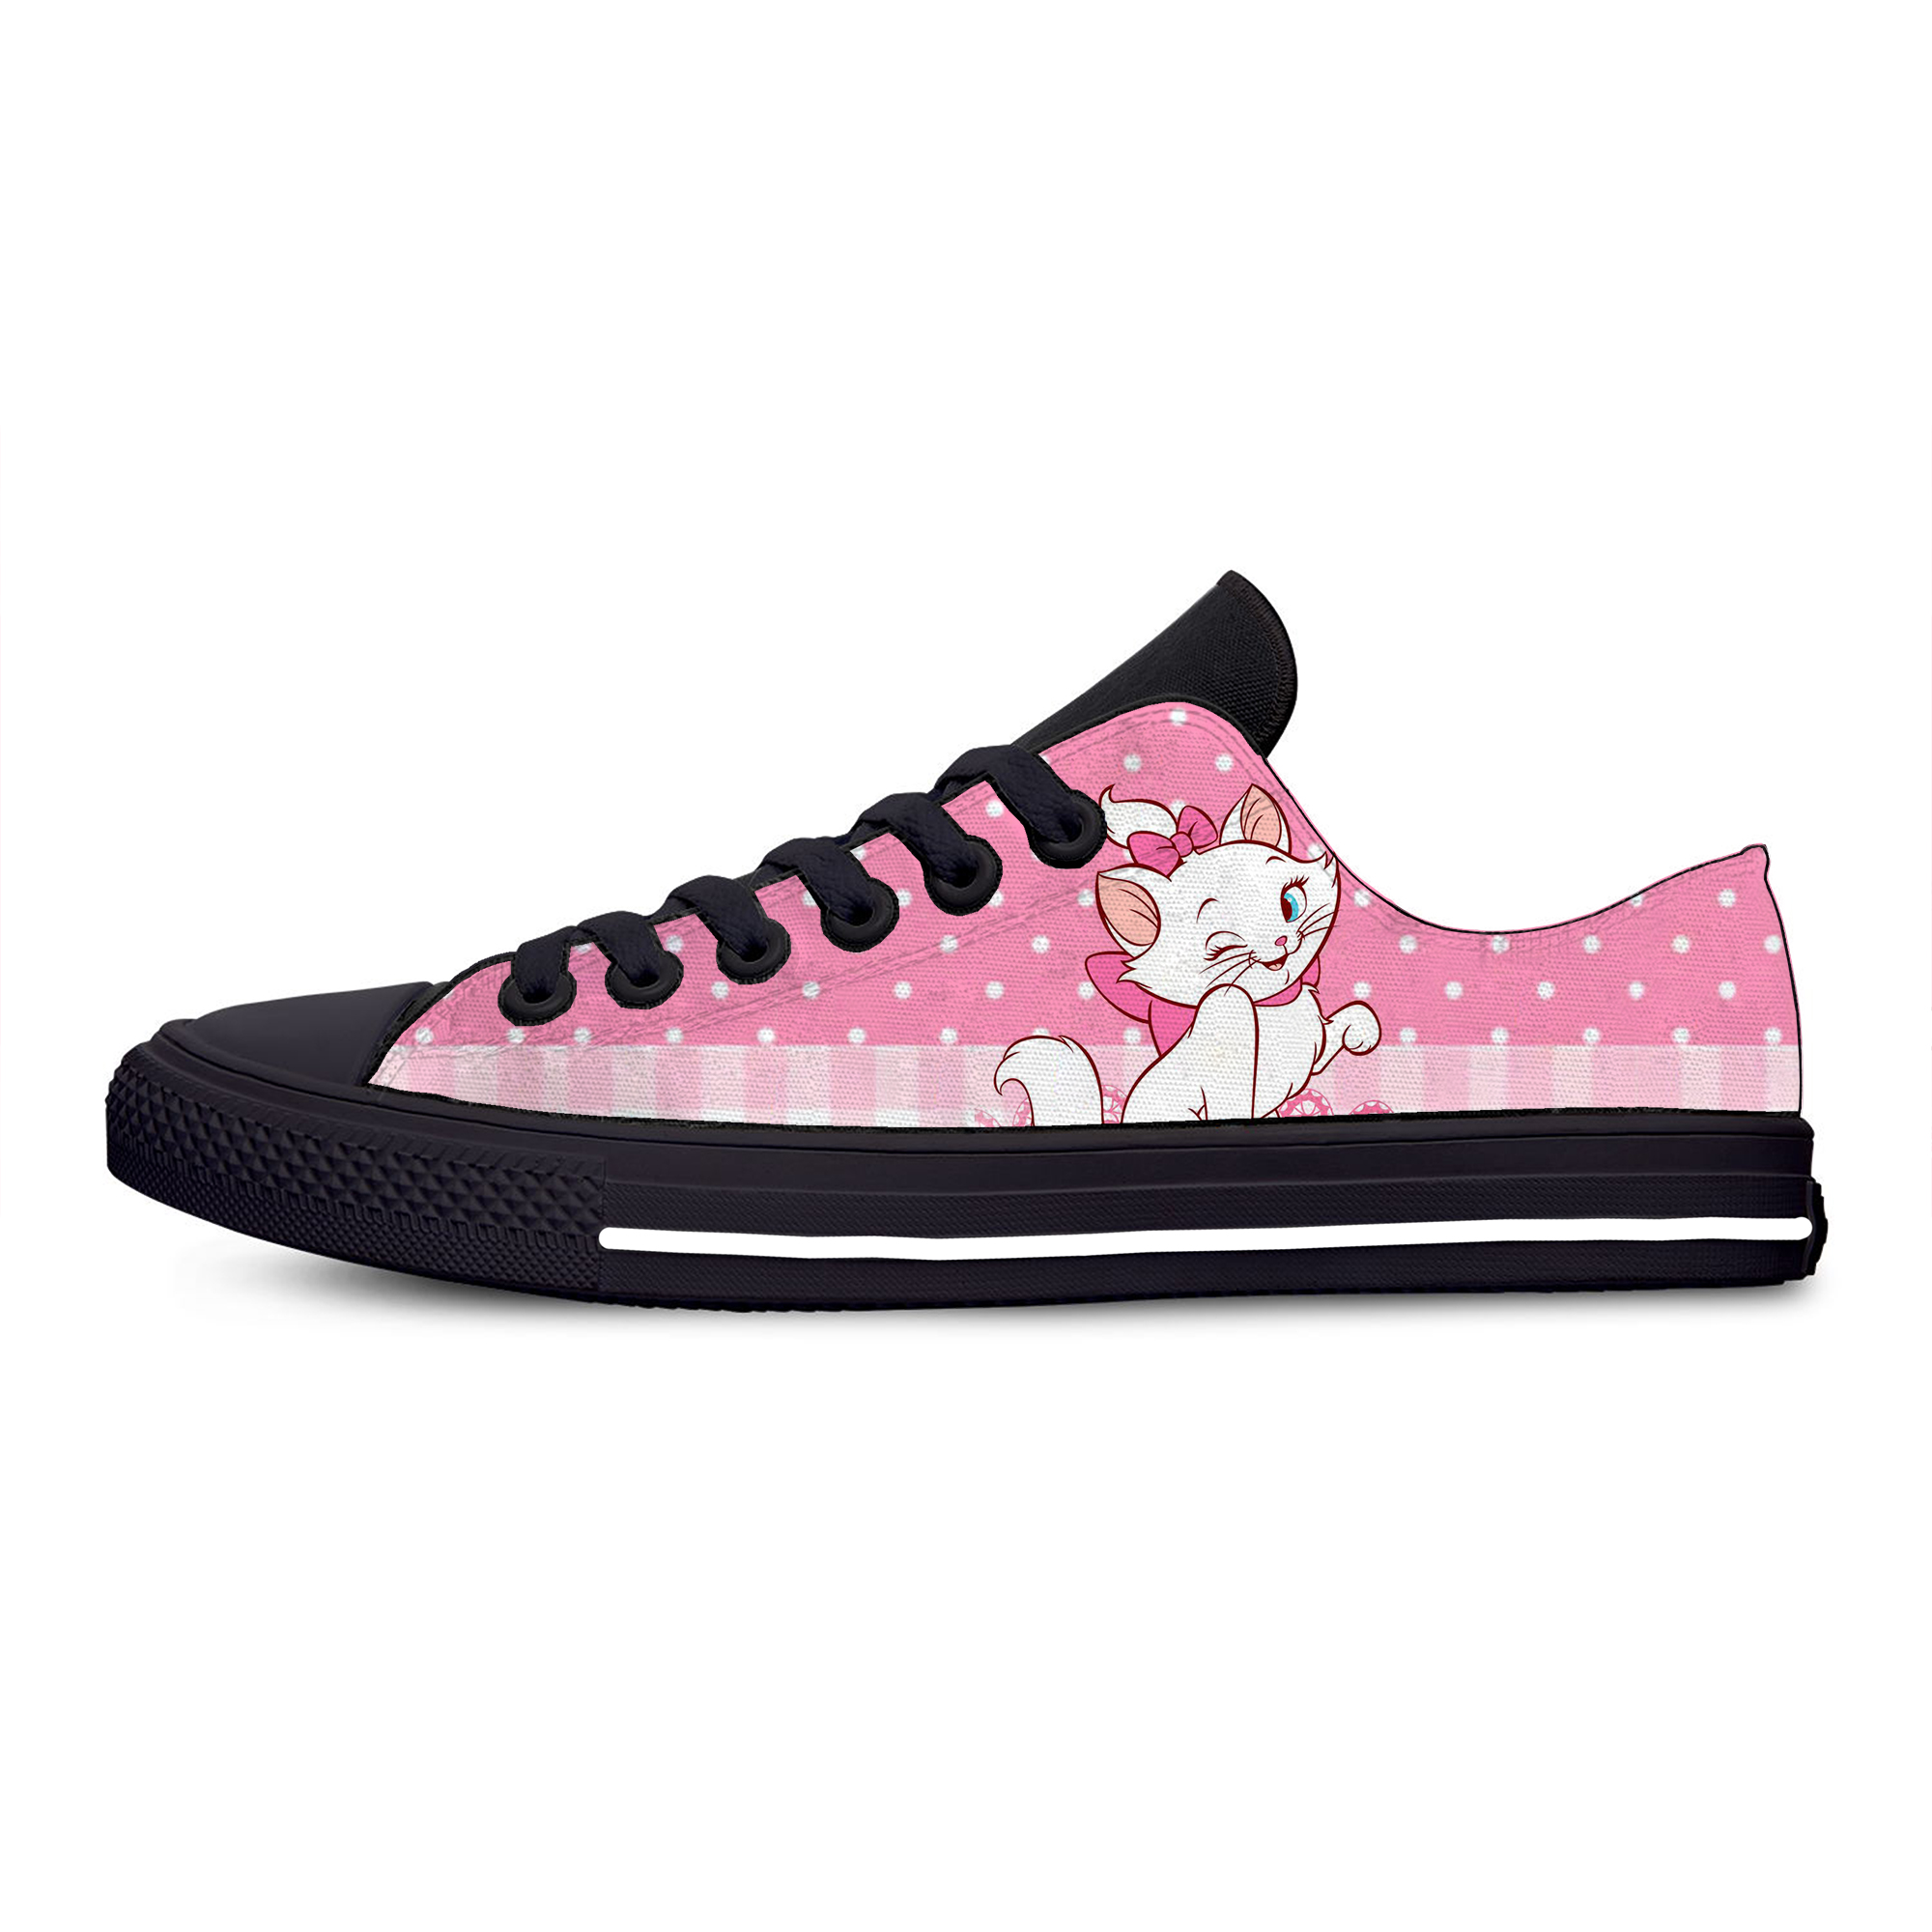 Marie Cat Aristocats Cartoon Cute Fashion Funny Casual Canvas Shoes Low Top Lightweight Breathable 3D Printed Men women Sneakers